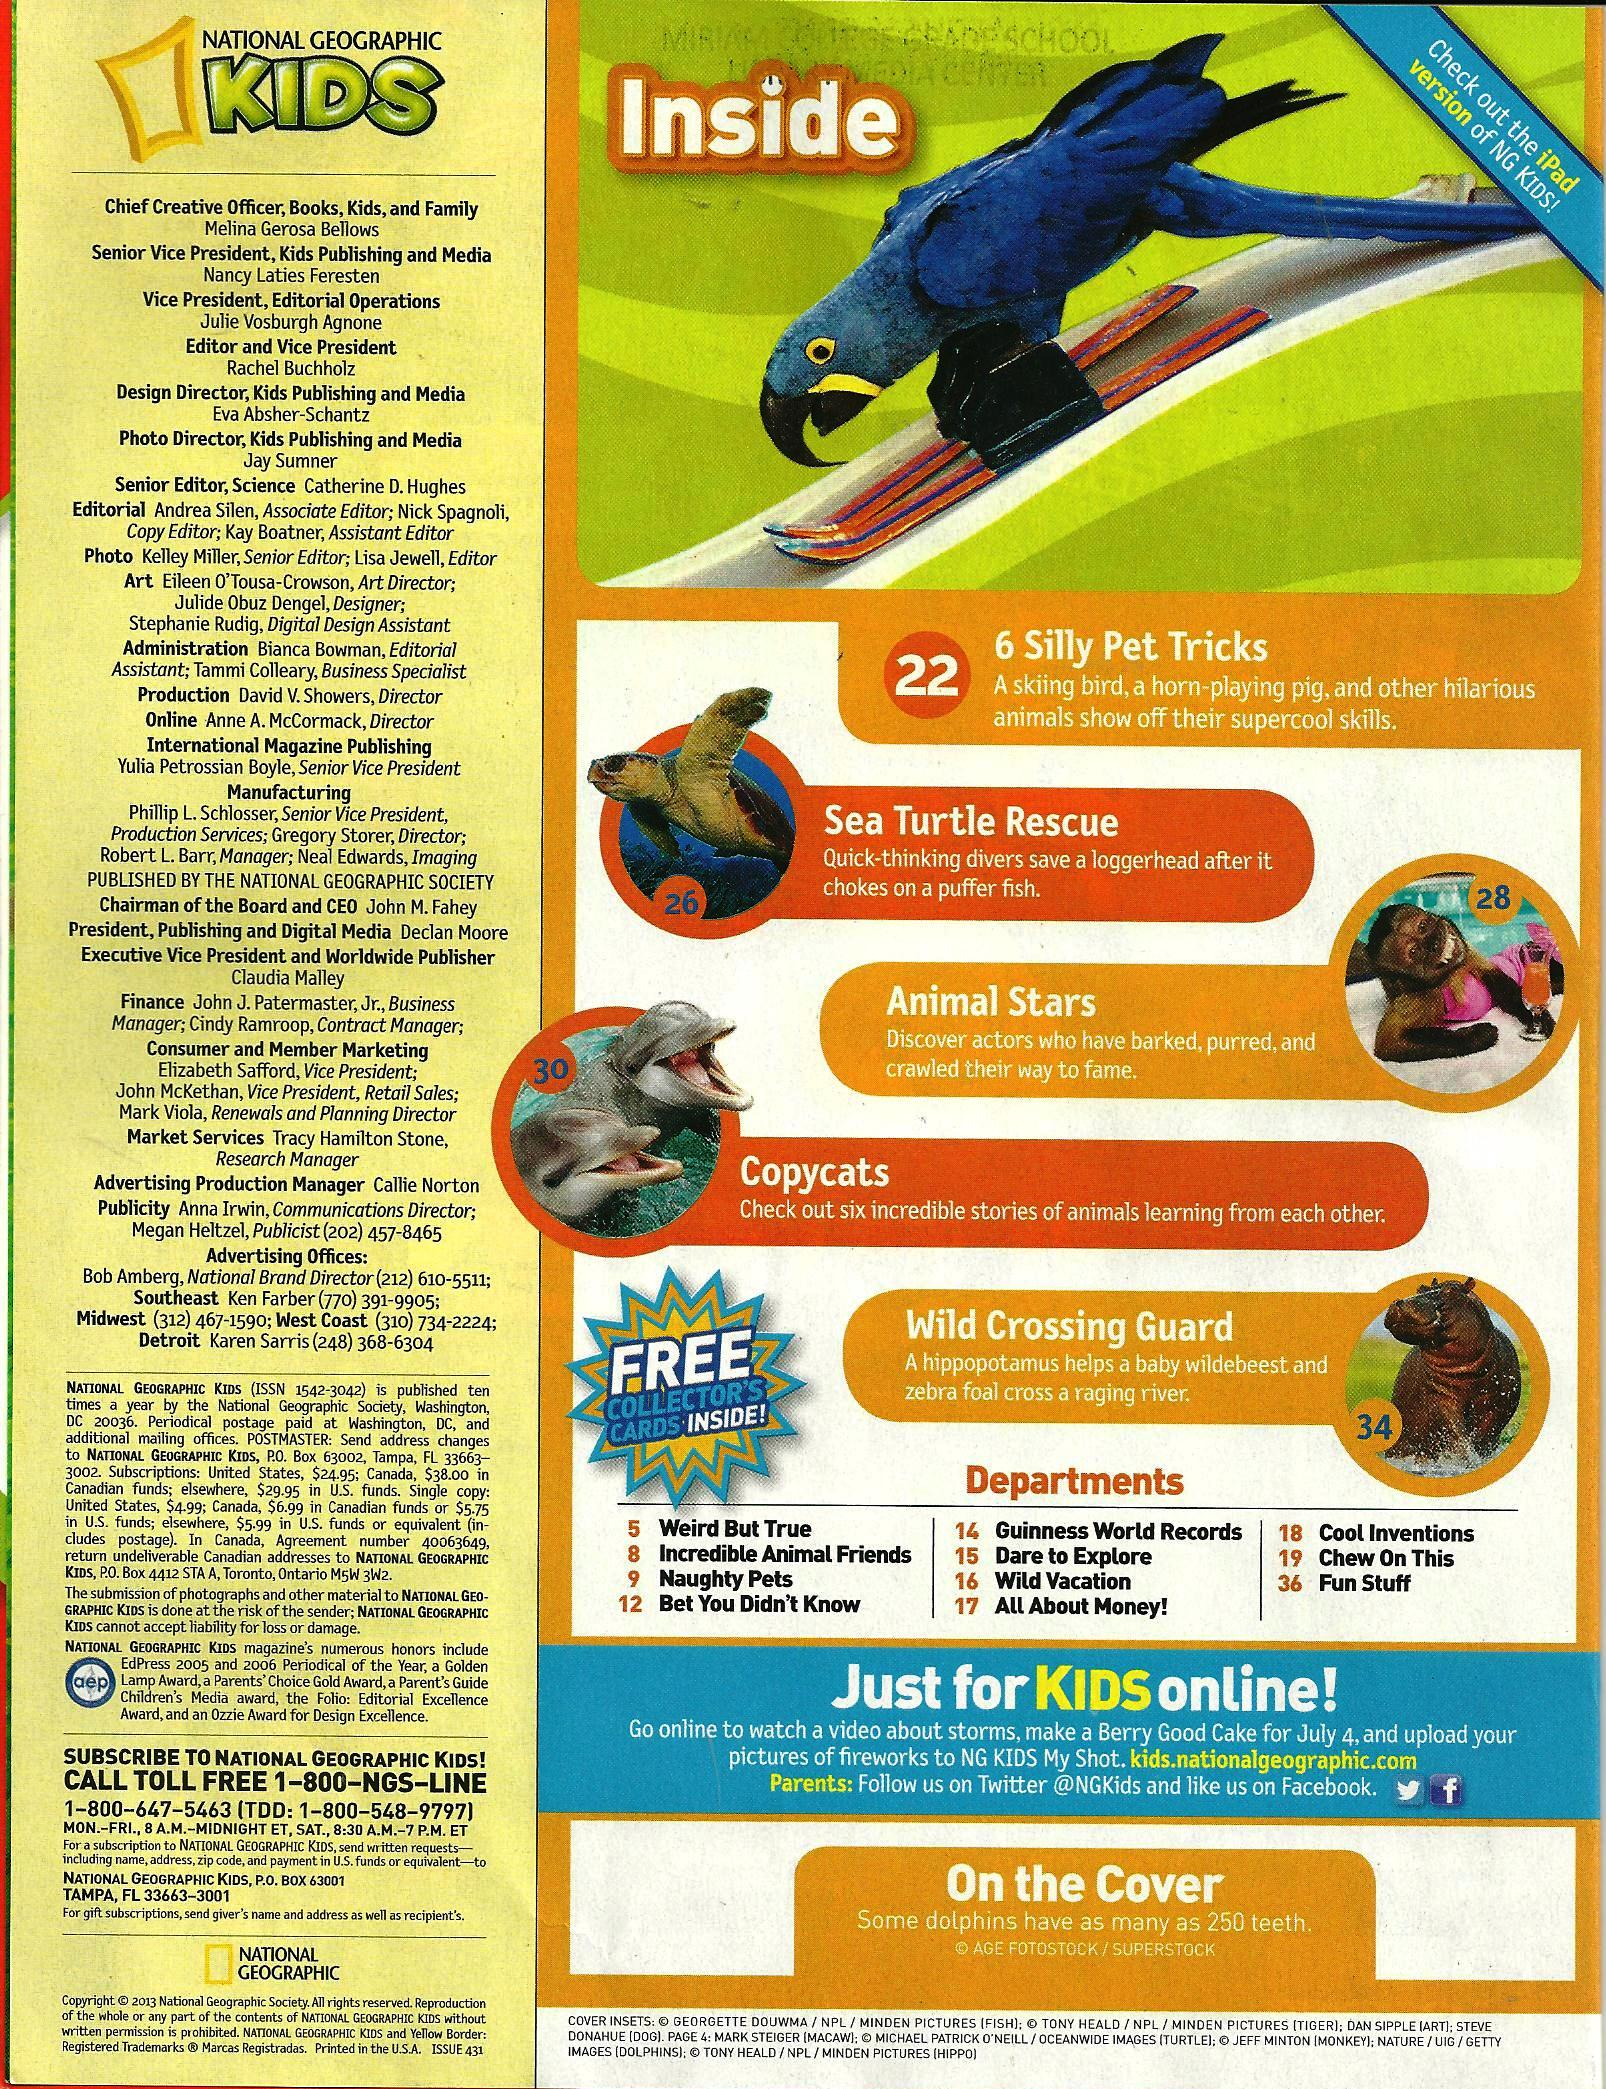 National Geographic for Kids June July 2013 Table of Contents